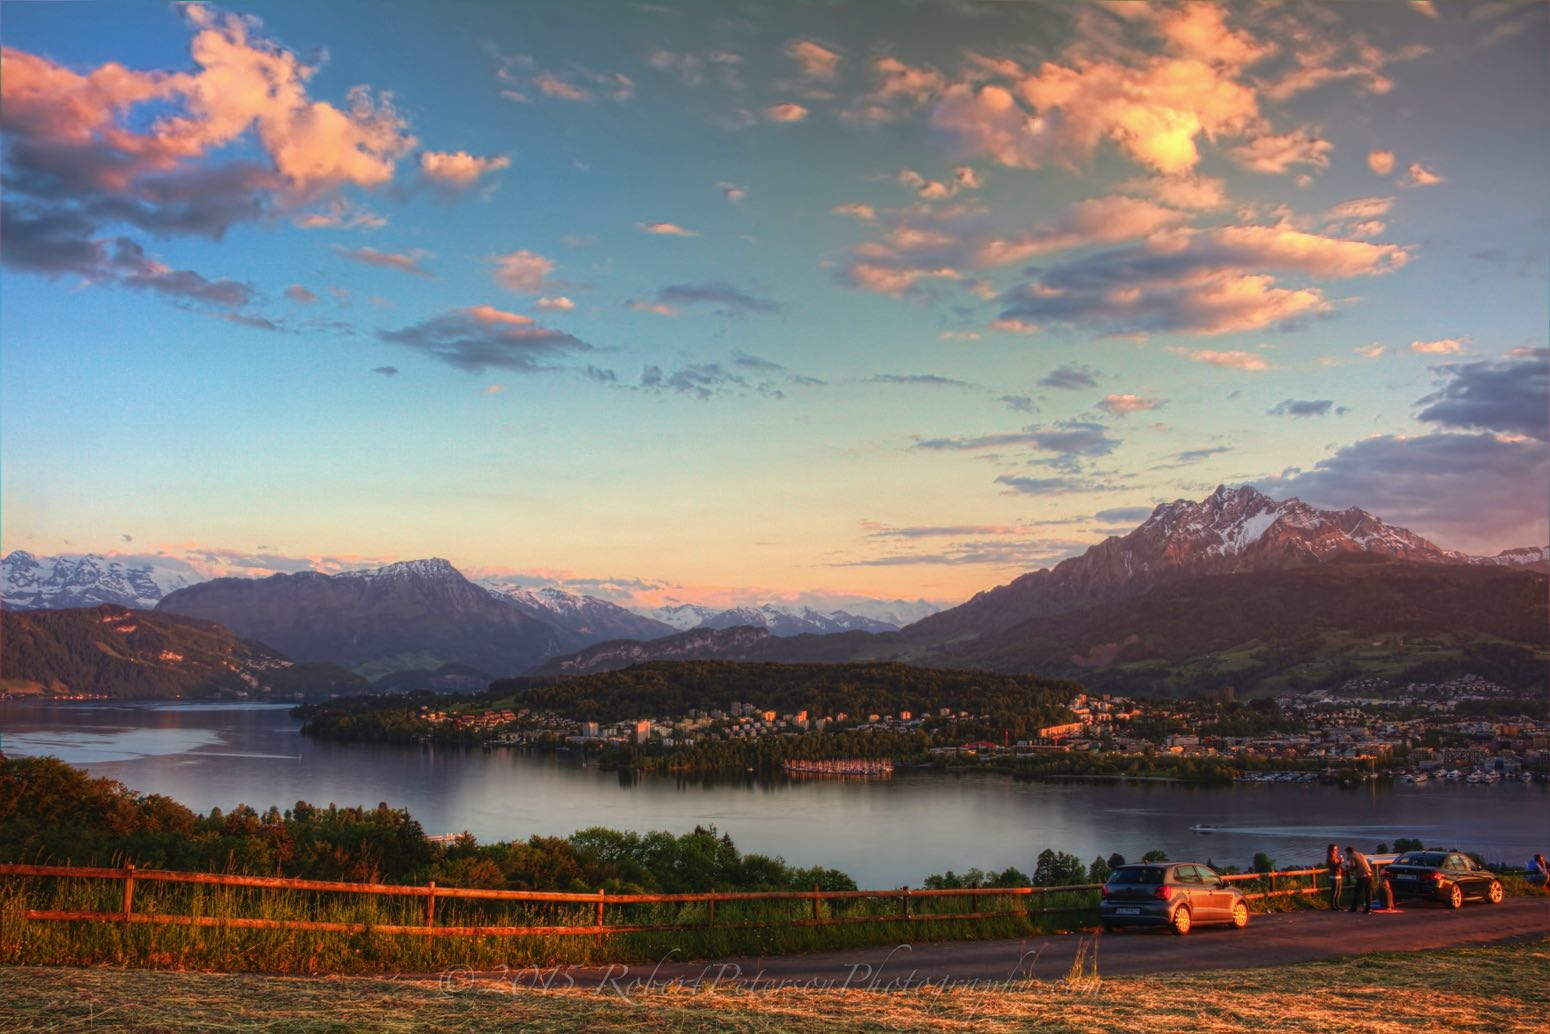 mount Pilatus Luzern Switzerland Dusk Cloud ghosting fix DeNoise Topaz Adjust 5 Compress robert peterson photography